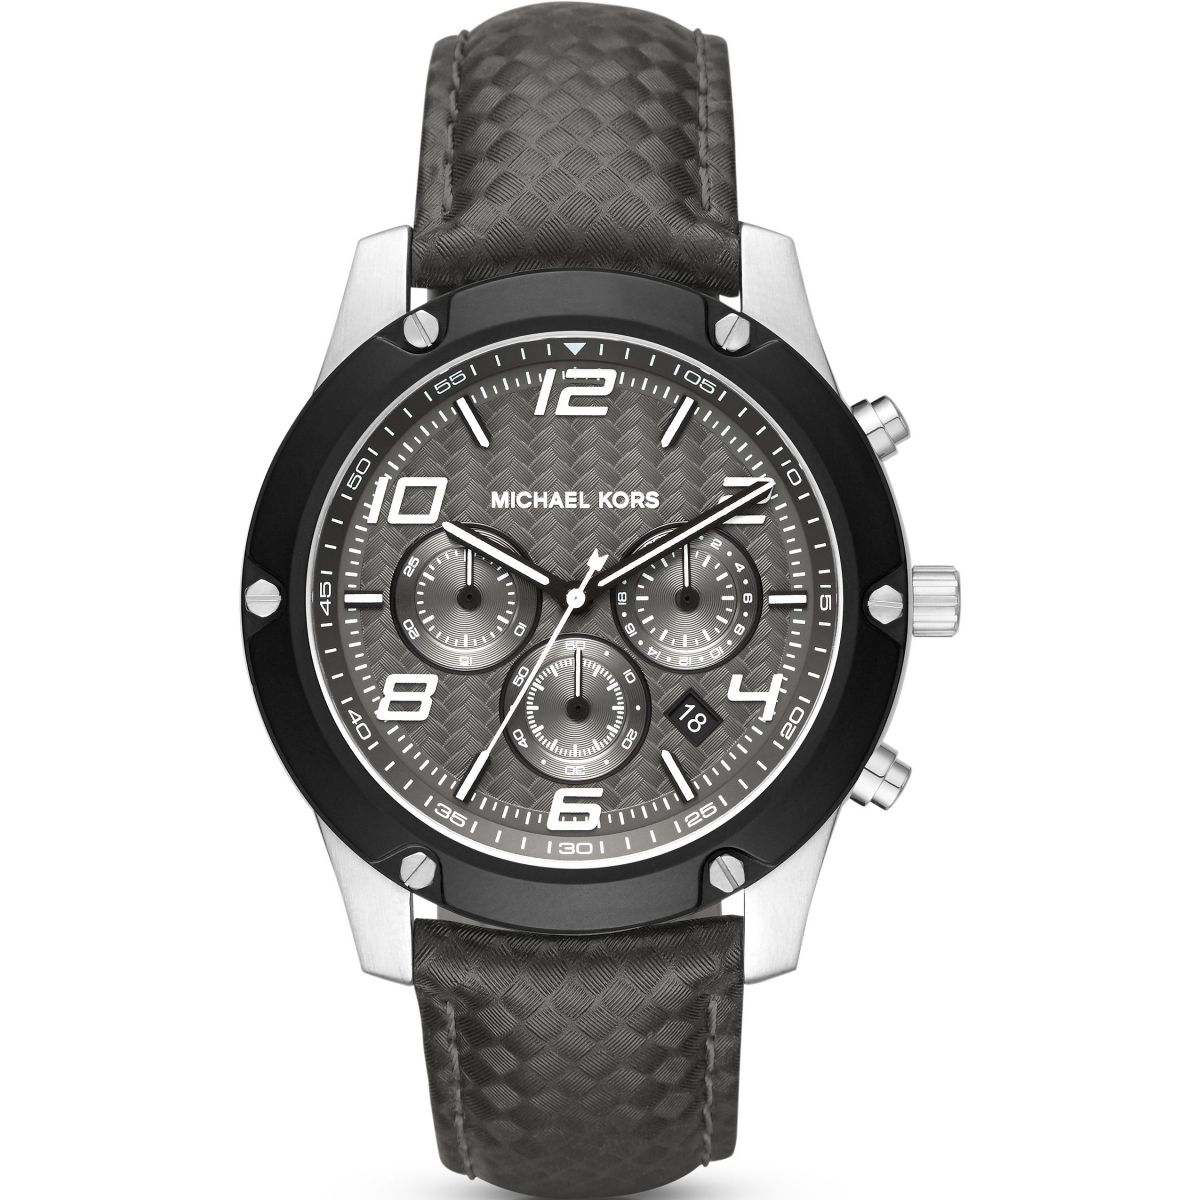 Michael Kors Caine Men's Watch